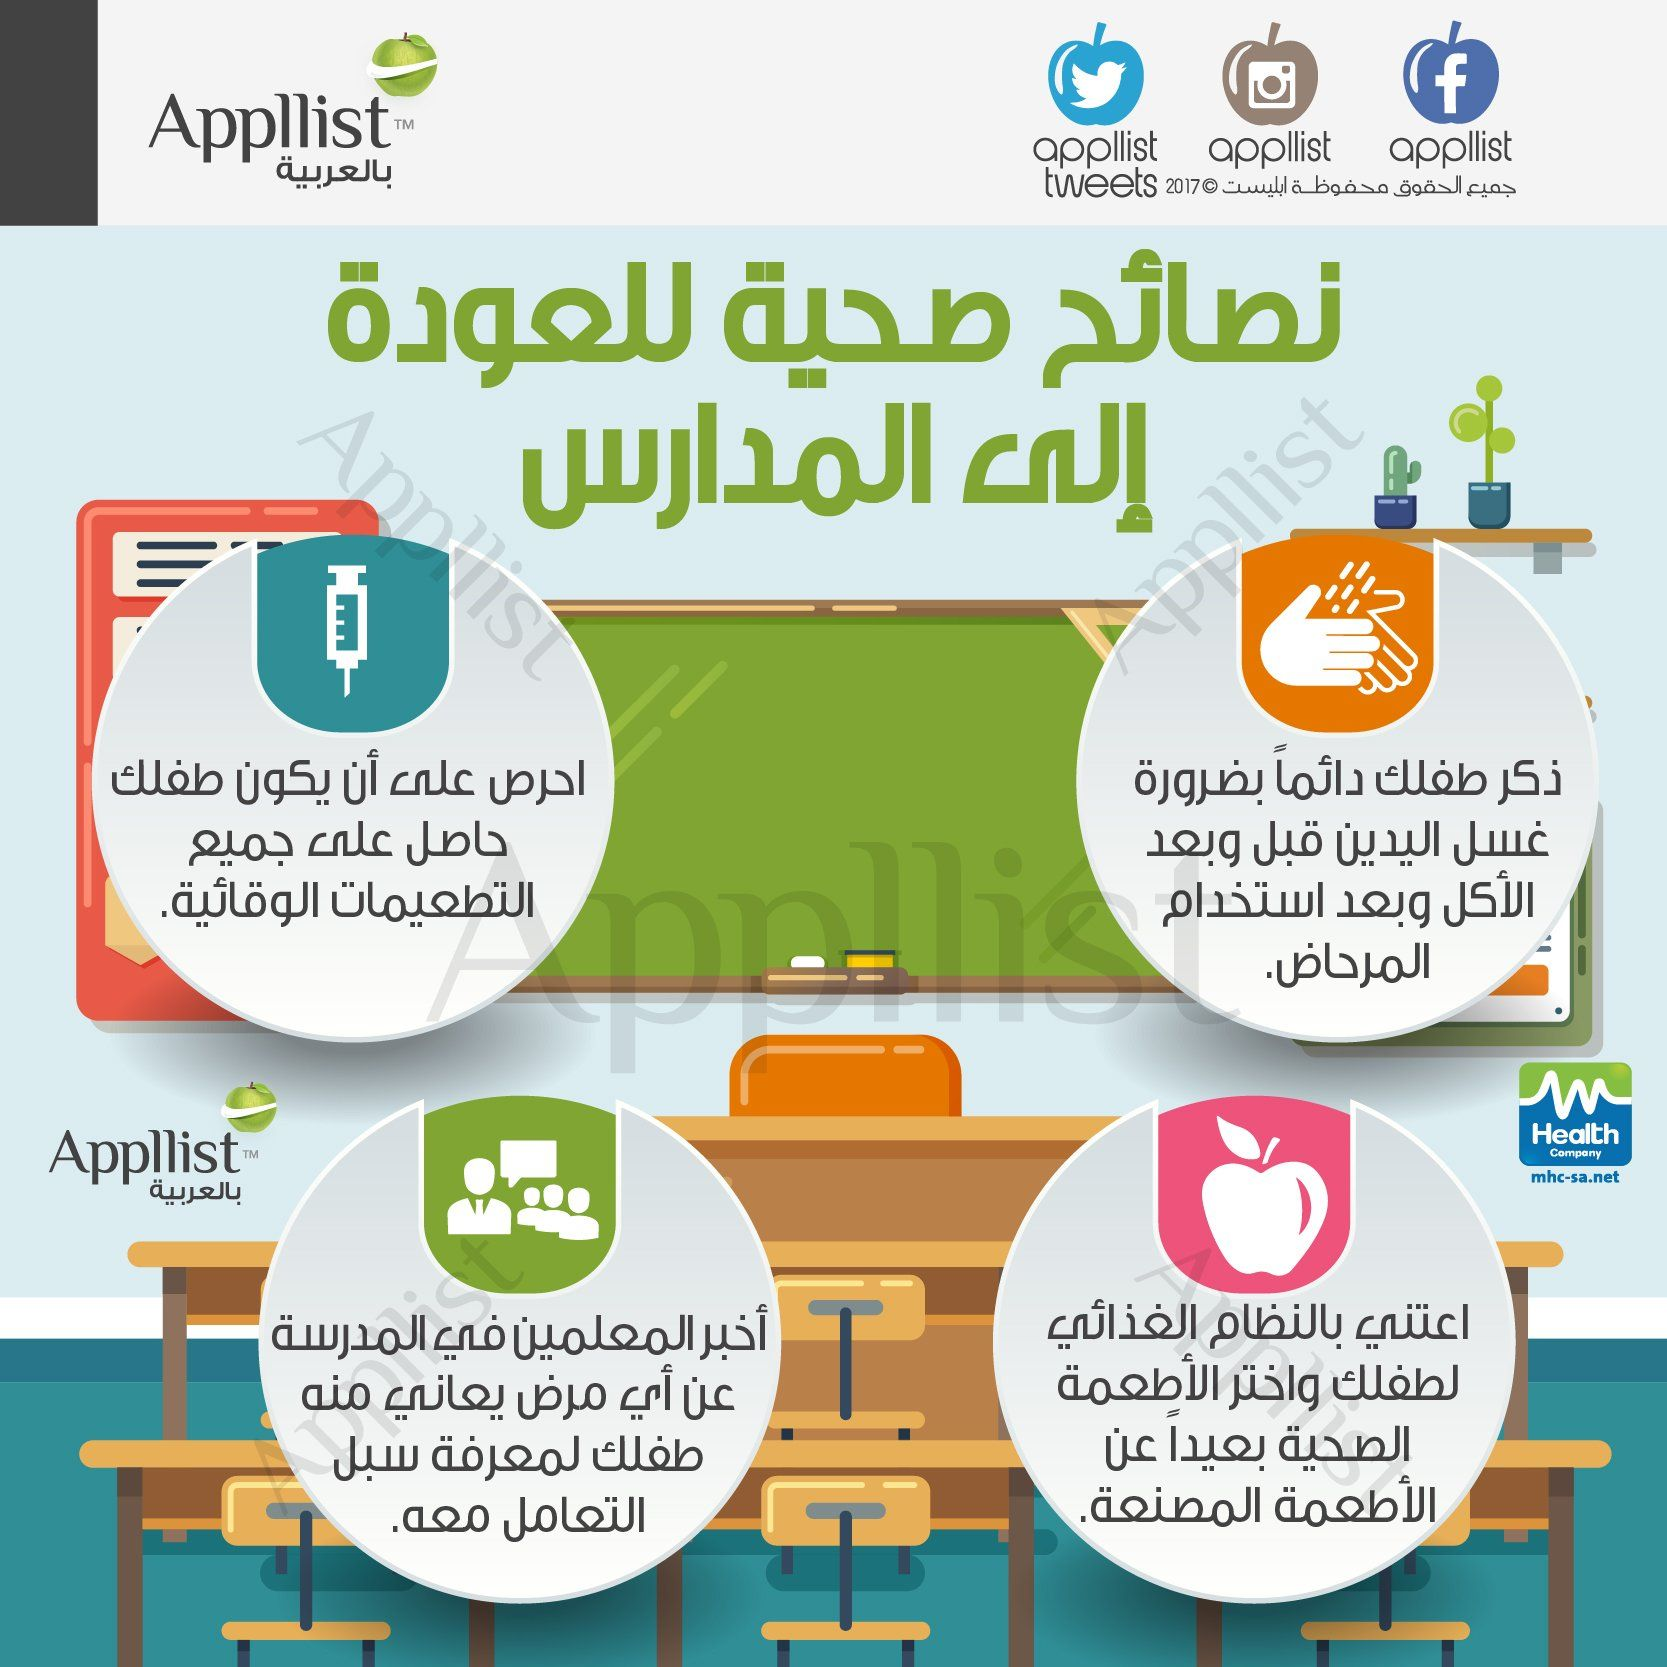 ابليست بالعربية Appllist Tweets Twitter Health Health Fitness Pie Chart